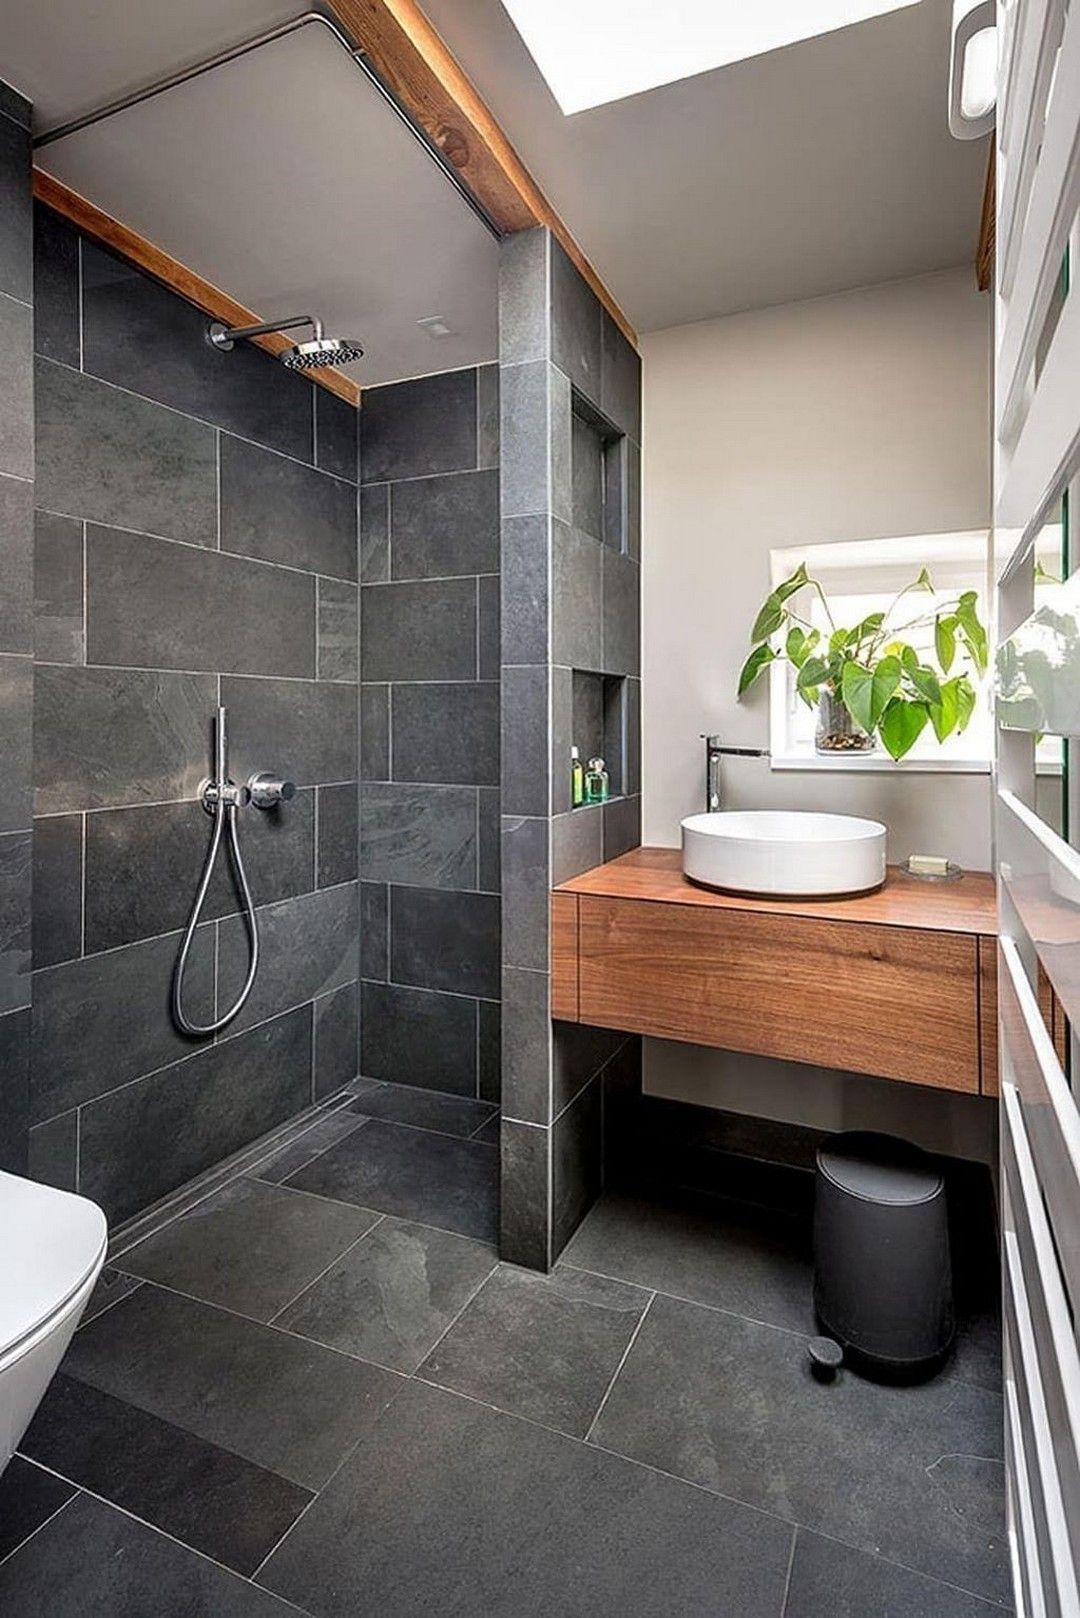 38 Ultra Clever Ideas For Decorating Small Dream Bathroom